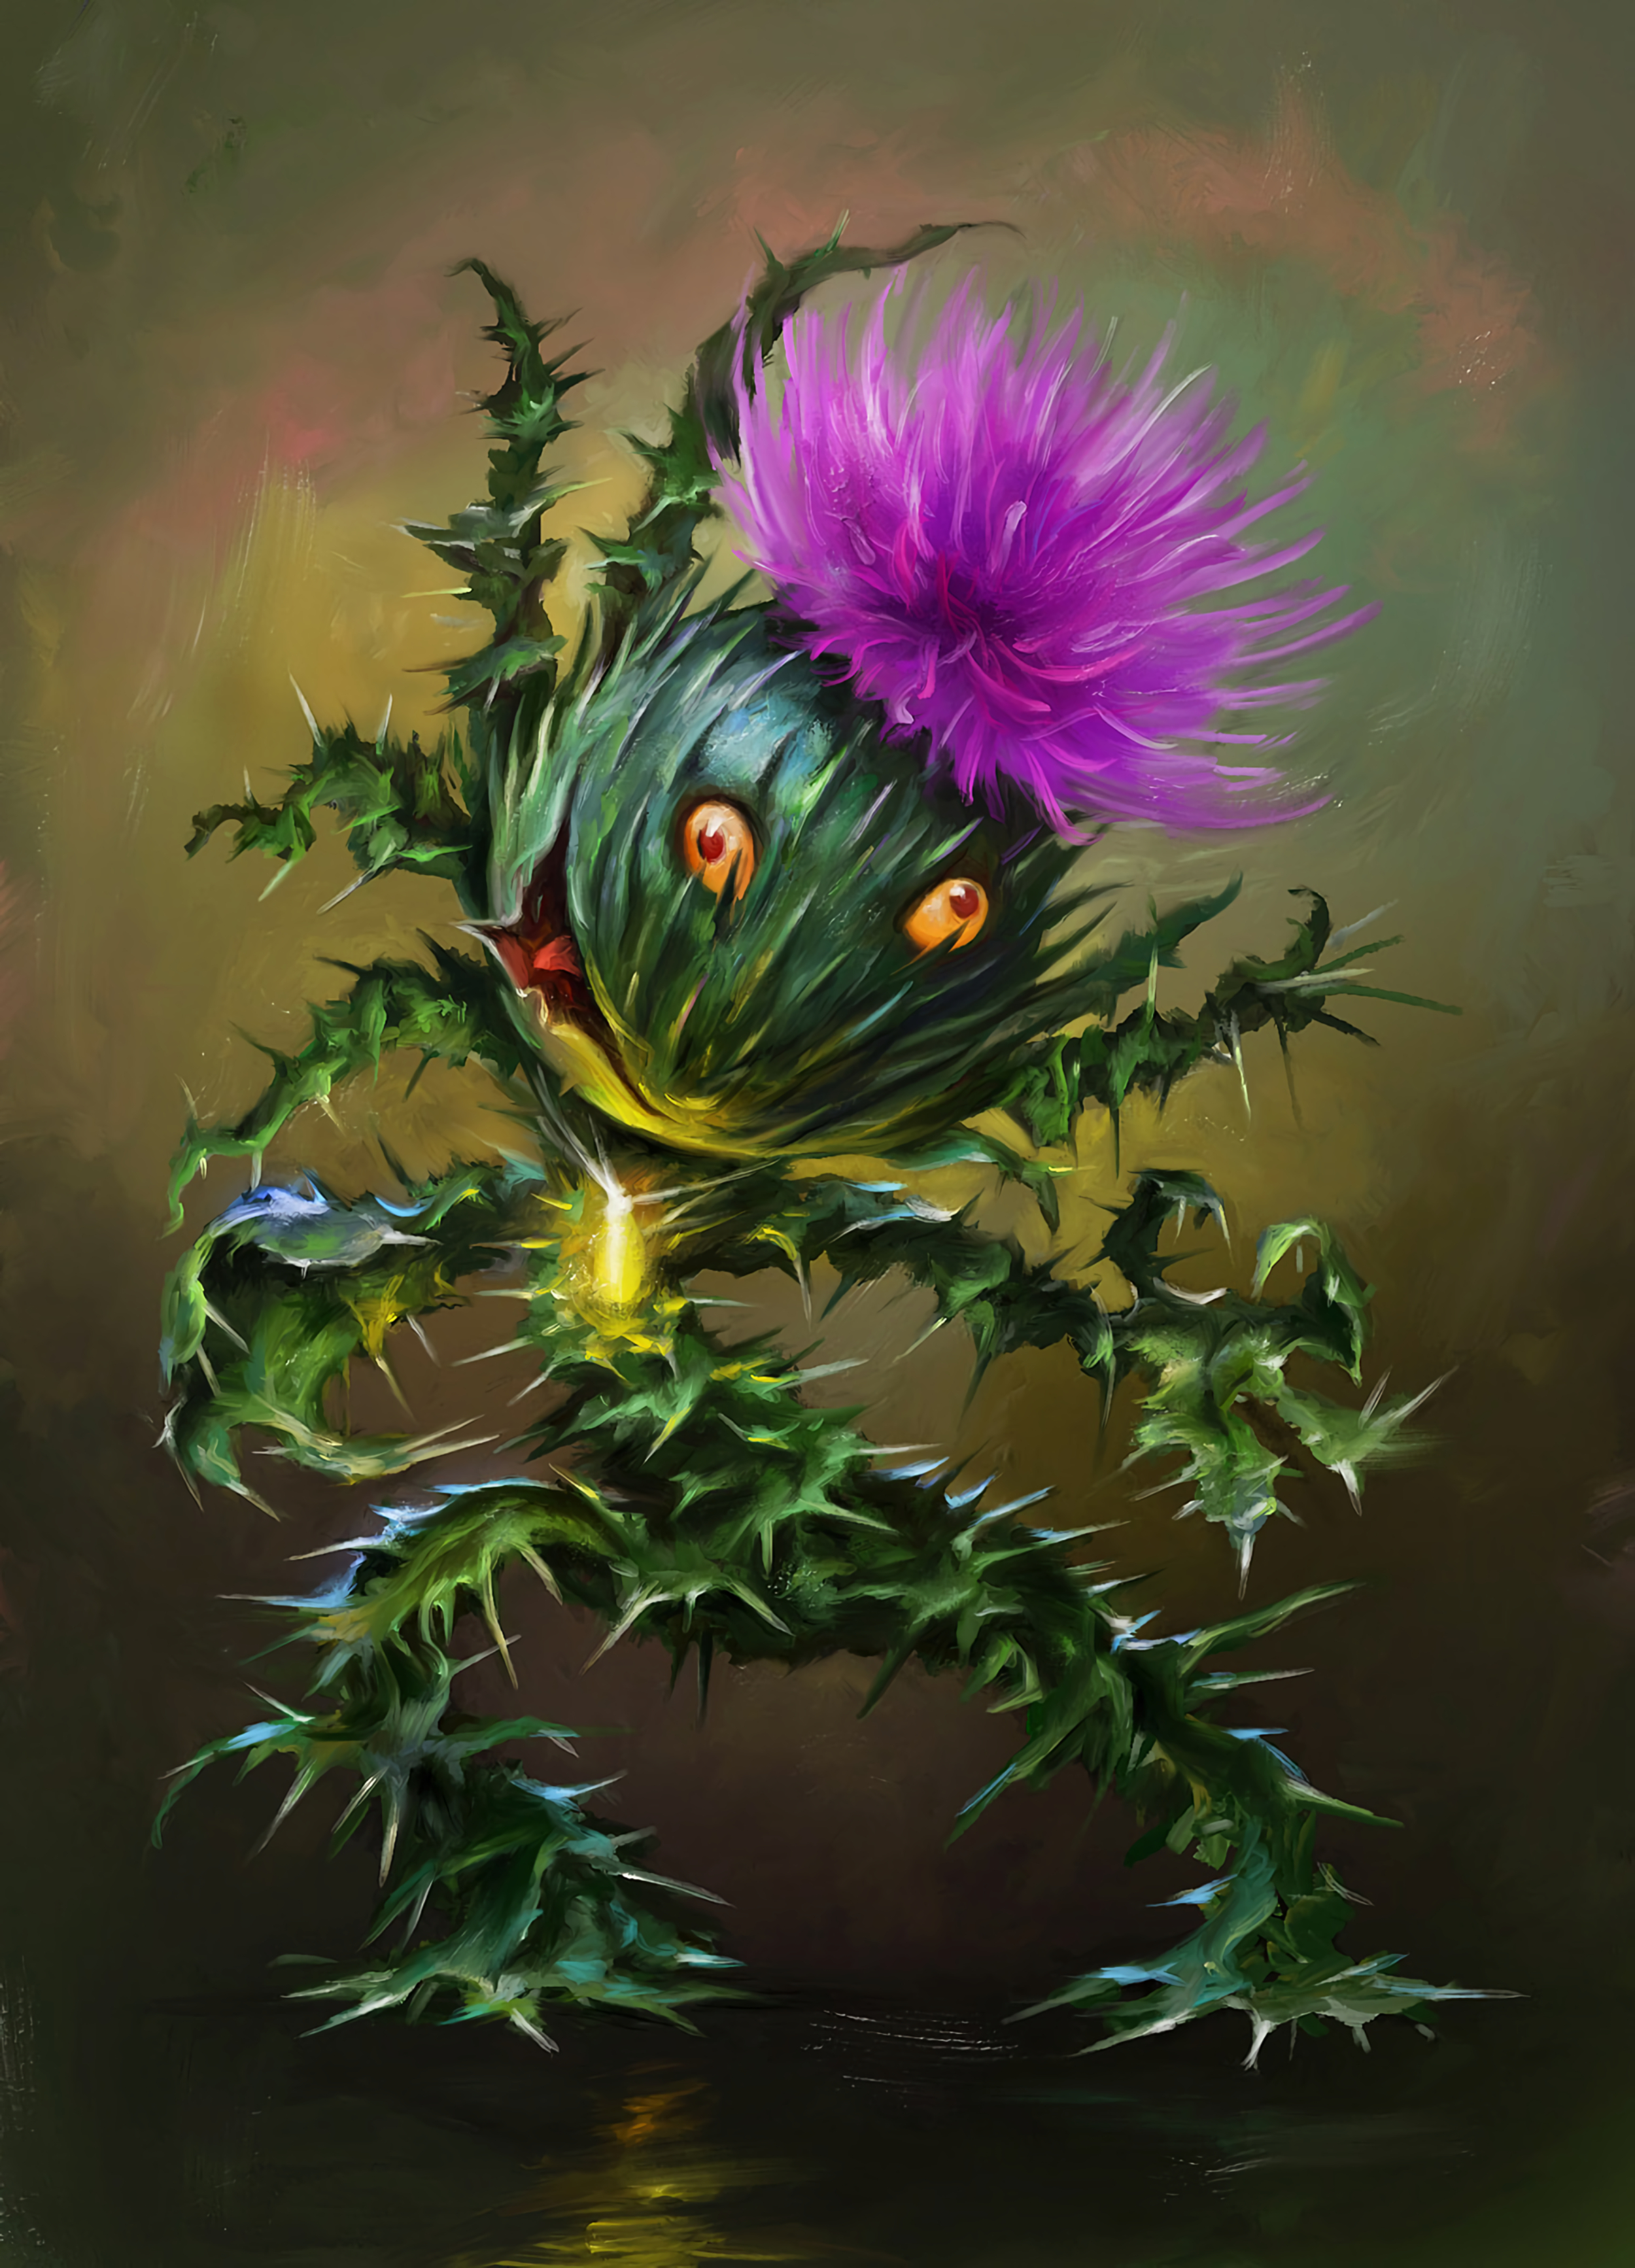 158042 download wallpaper Funny, Art, Flower, Emotions, Thistle screensavers and pictures for free